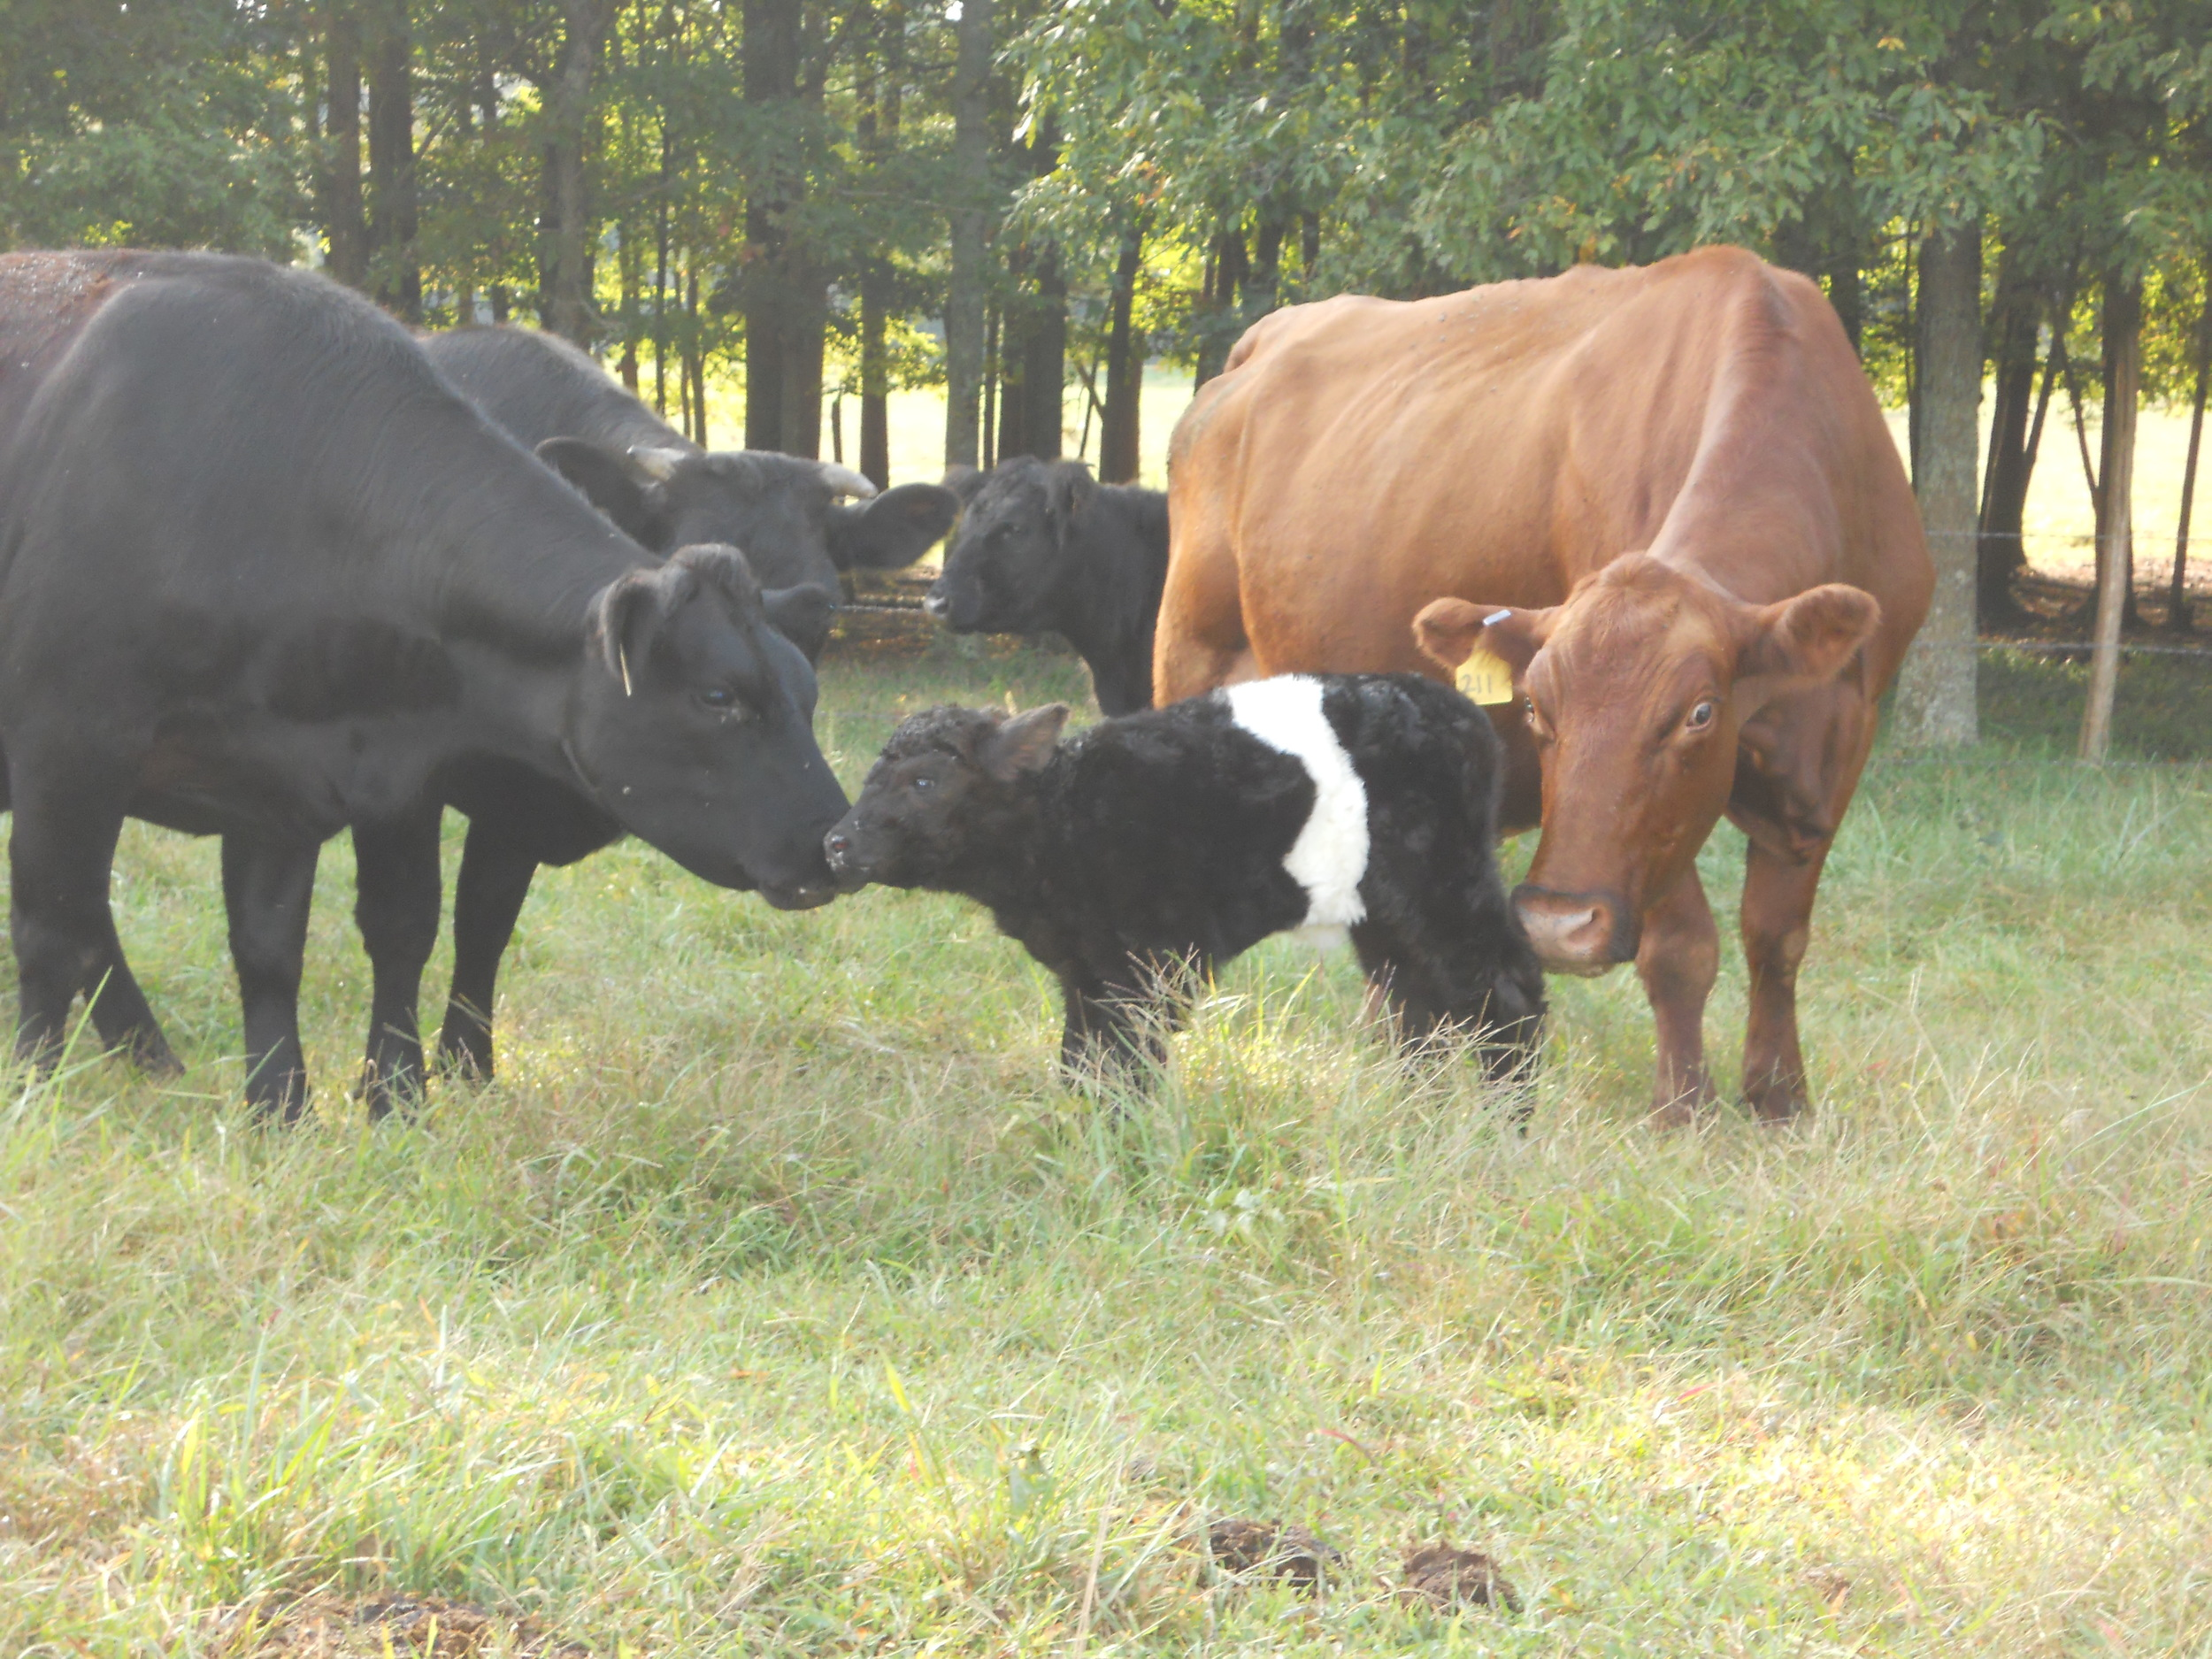 Cows checking out new calf